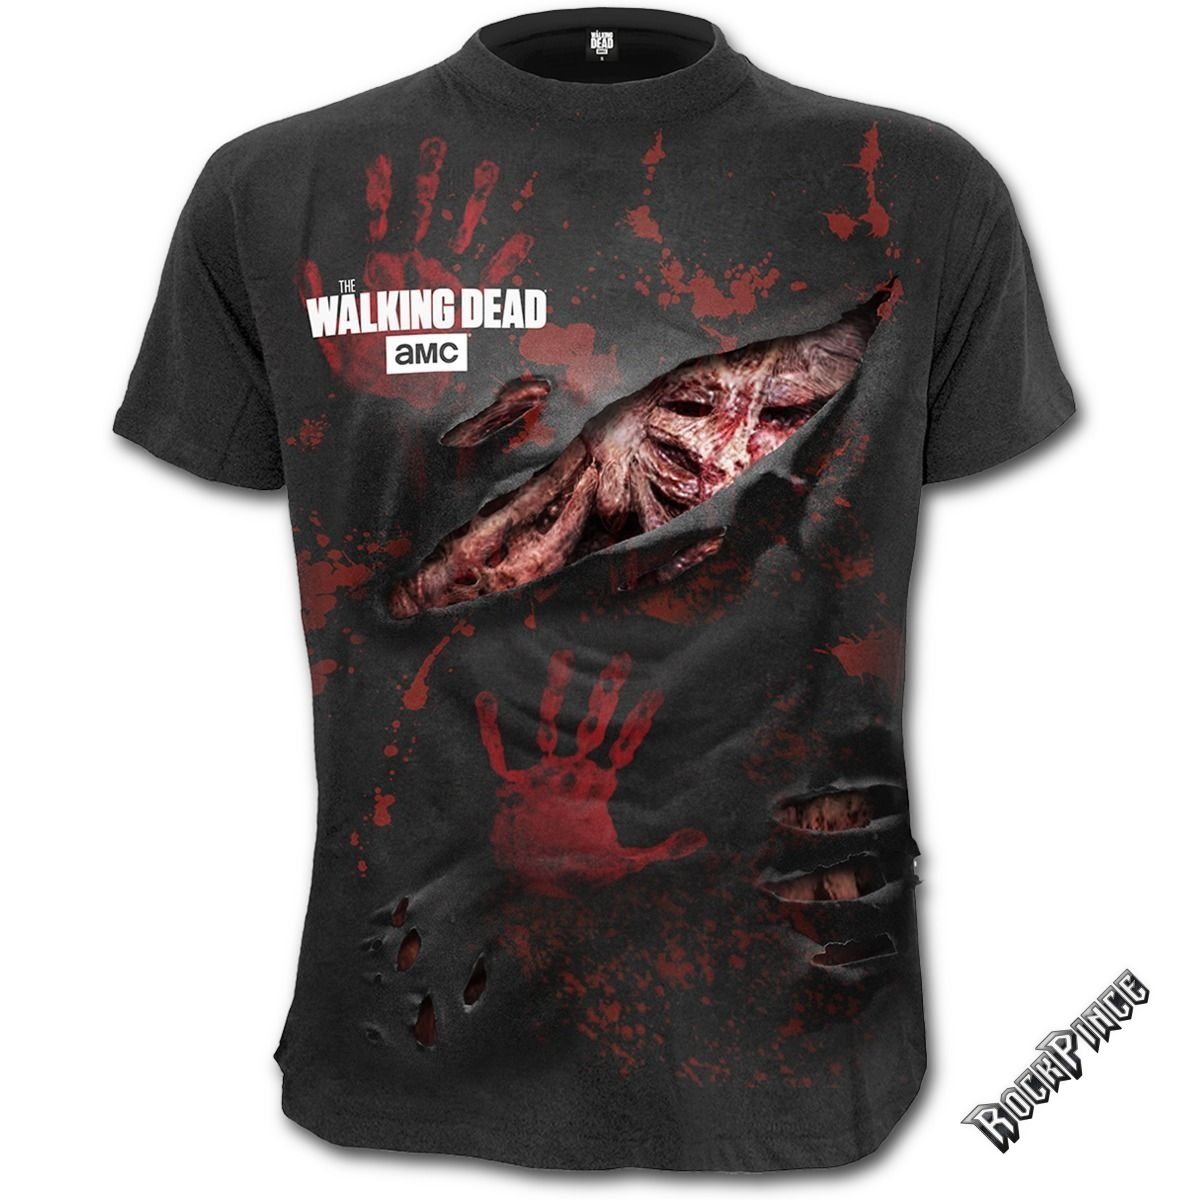 The Walking Dead - DARYL - ALL INFECTED - Ripped T-Shirt Black (Plain) - G001M125